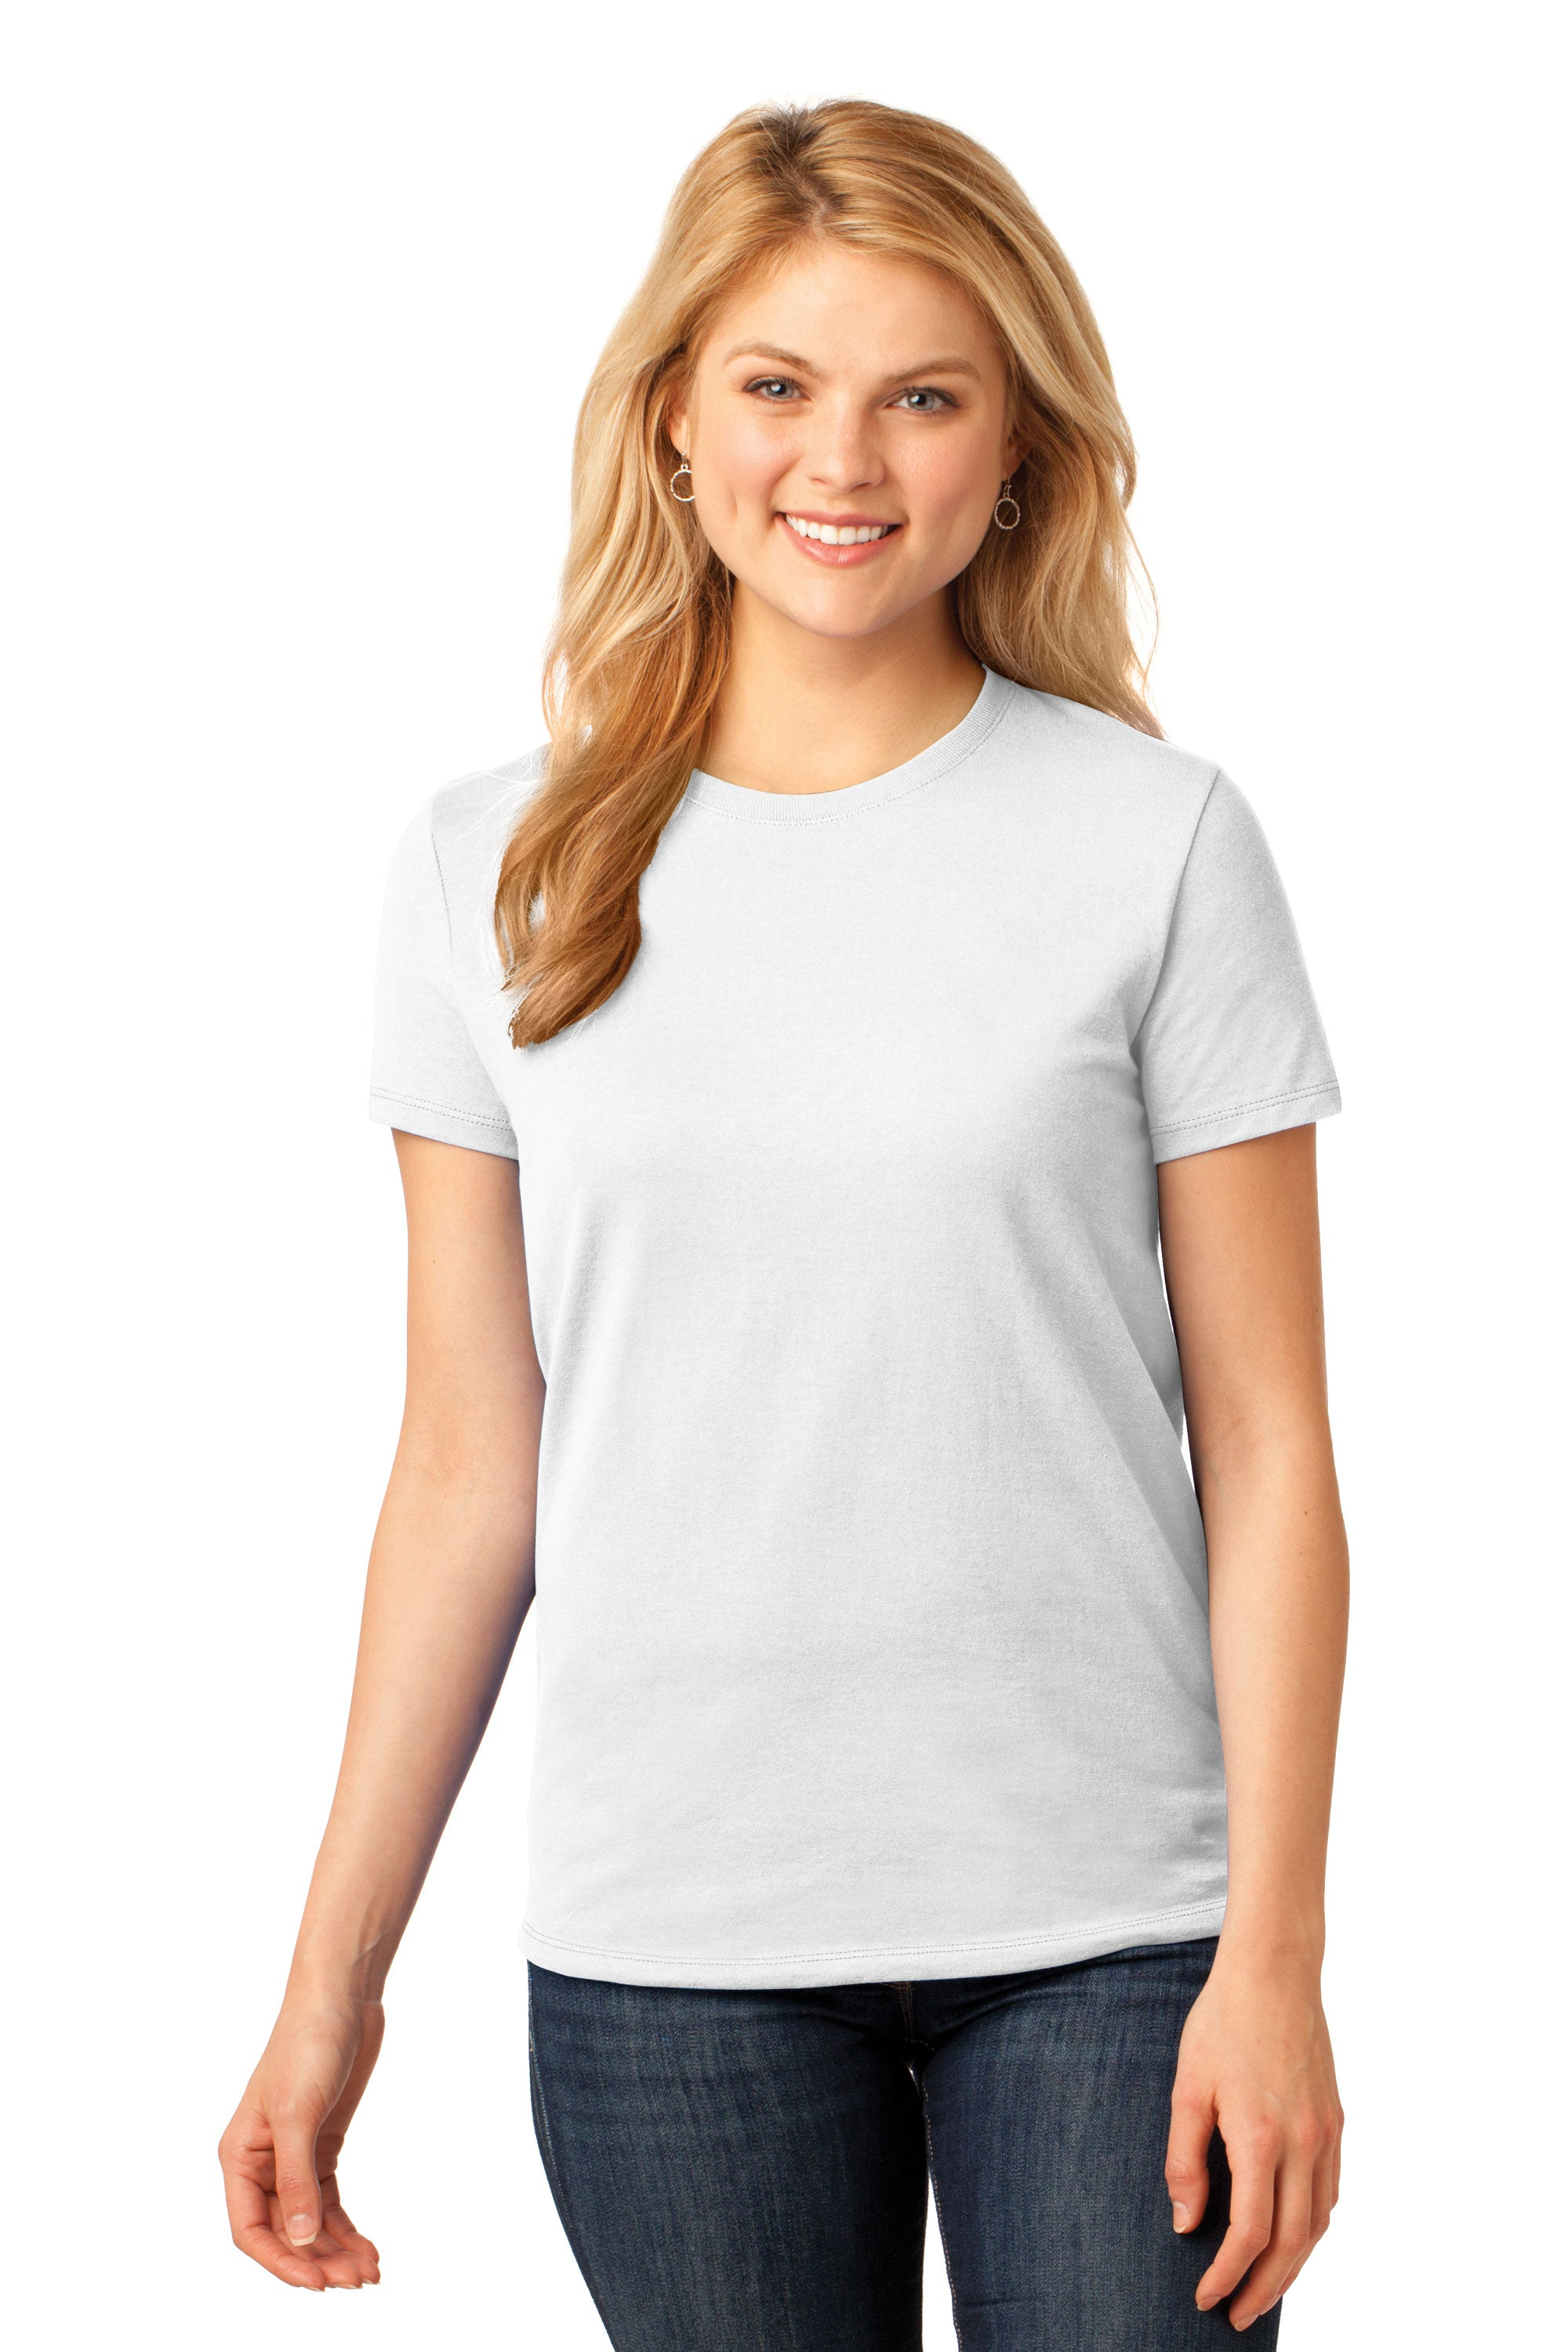 YOUR CUSTOM DESIGN - YOUTH GIRL'S T-SHIRT